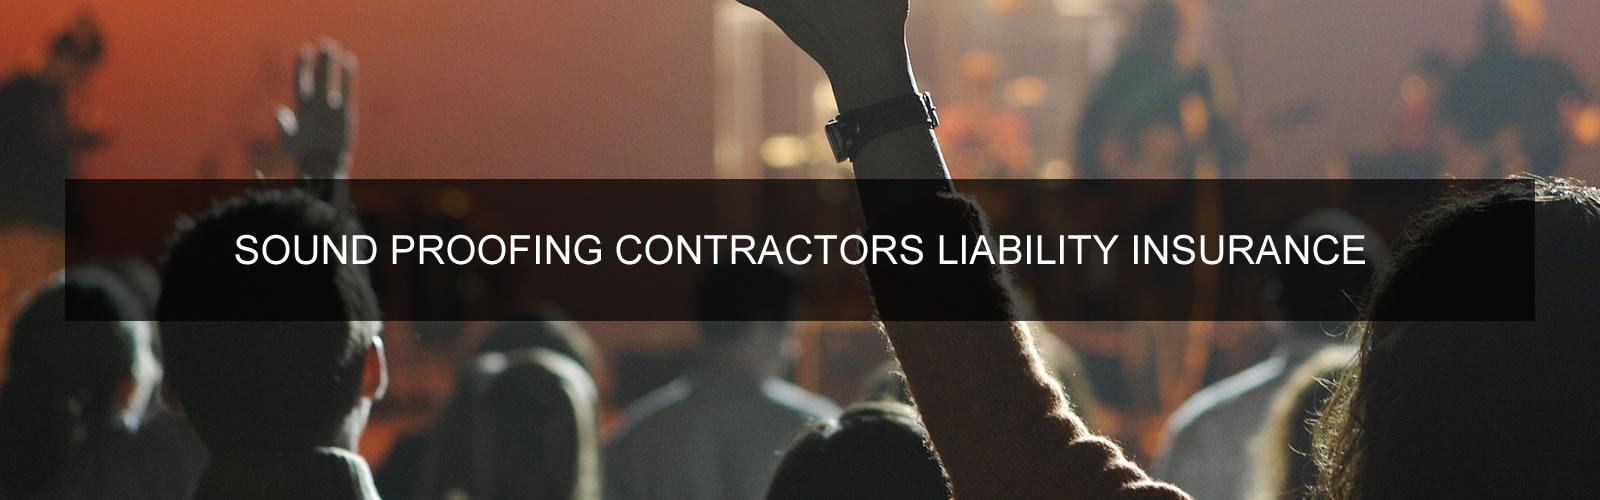 Sound Proofing Contractors Liability Insurance